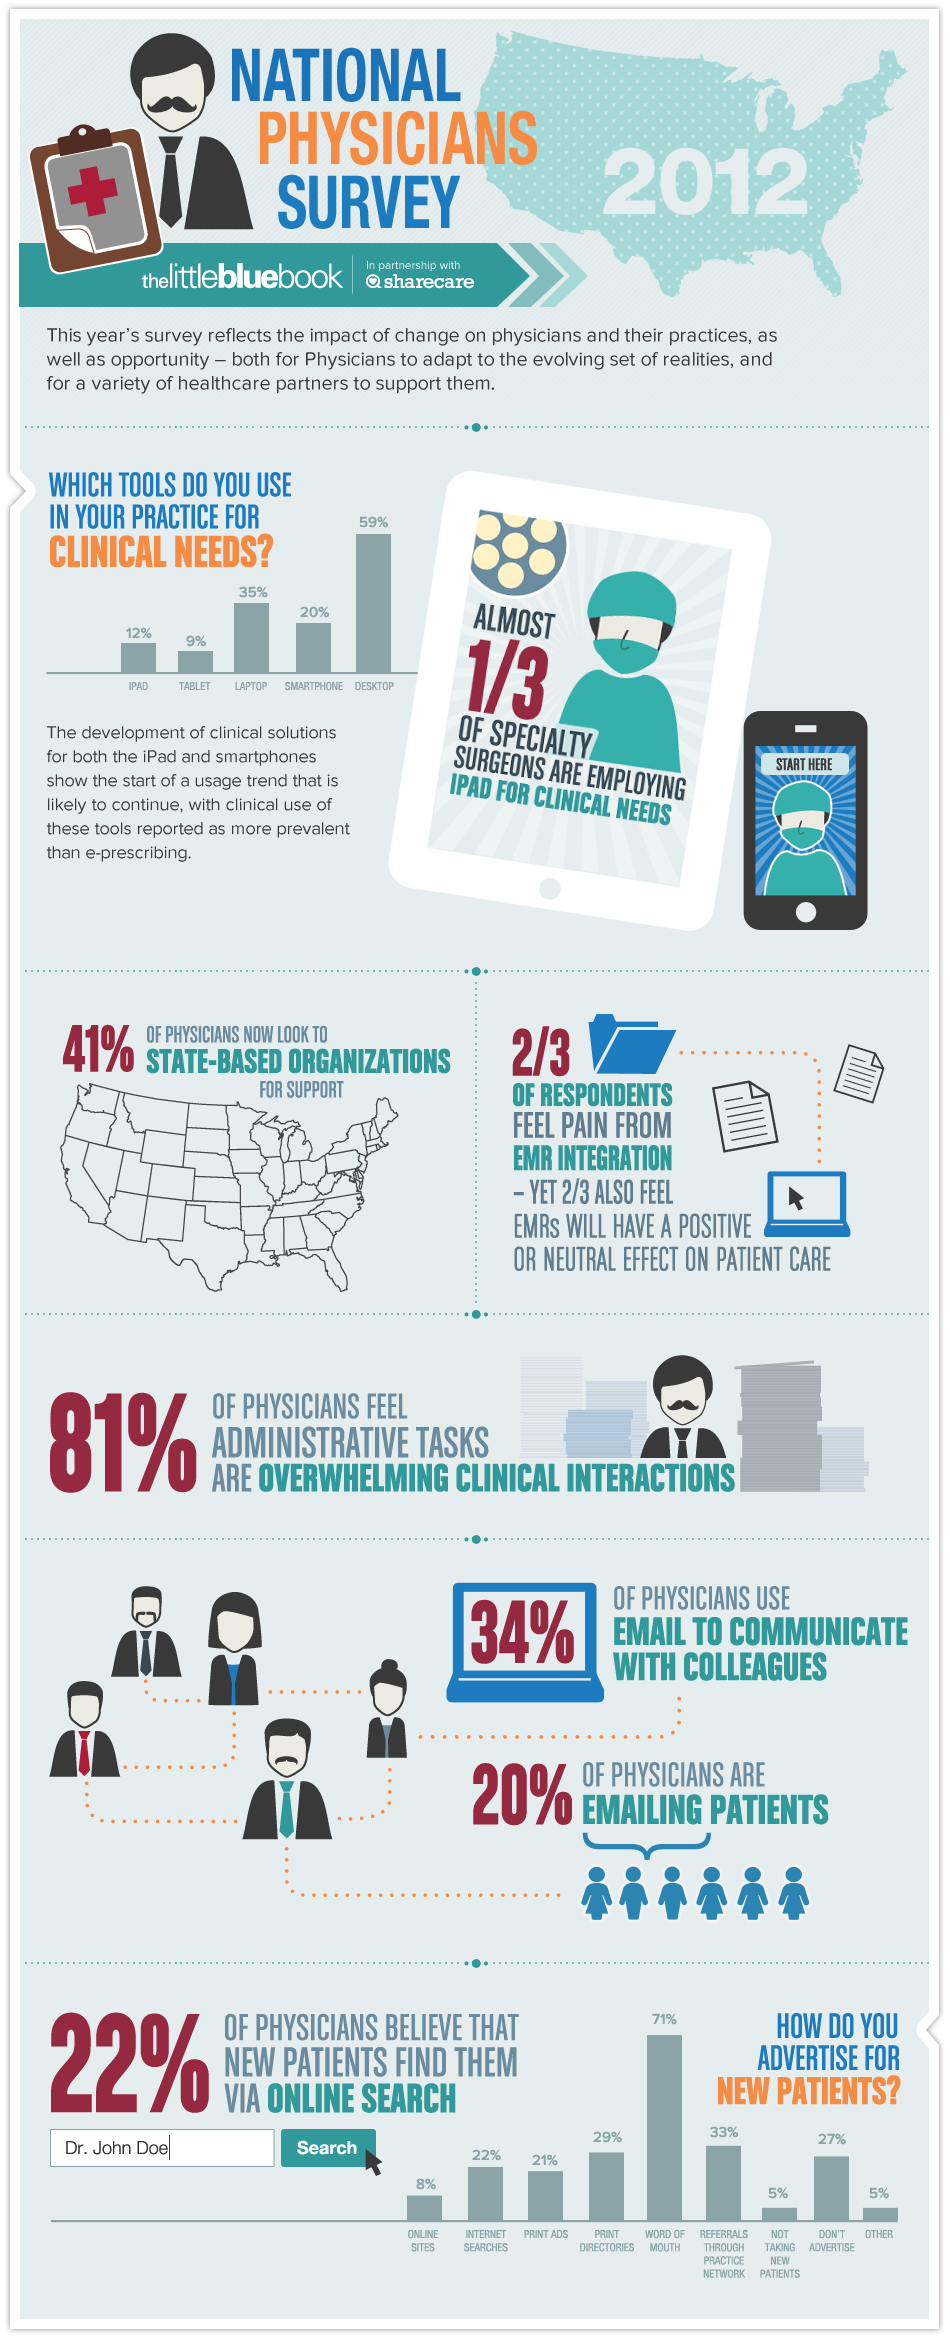 National-Physicians-Survey-2012-infographic